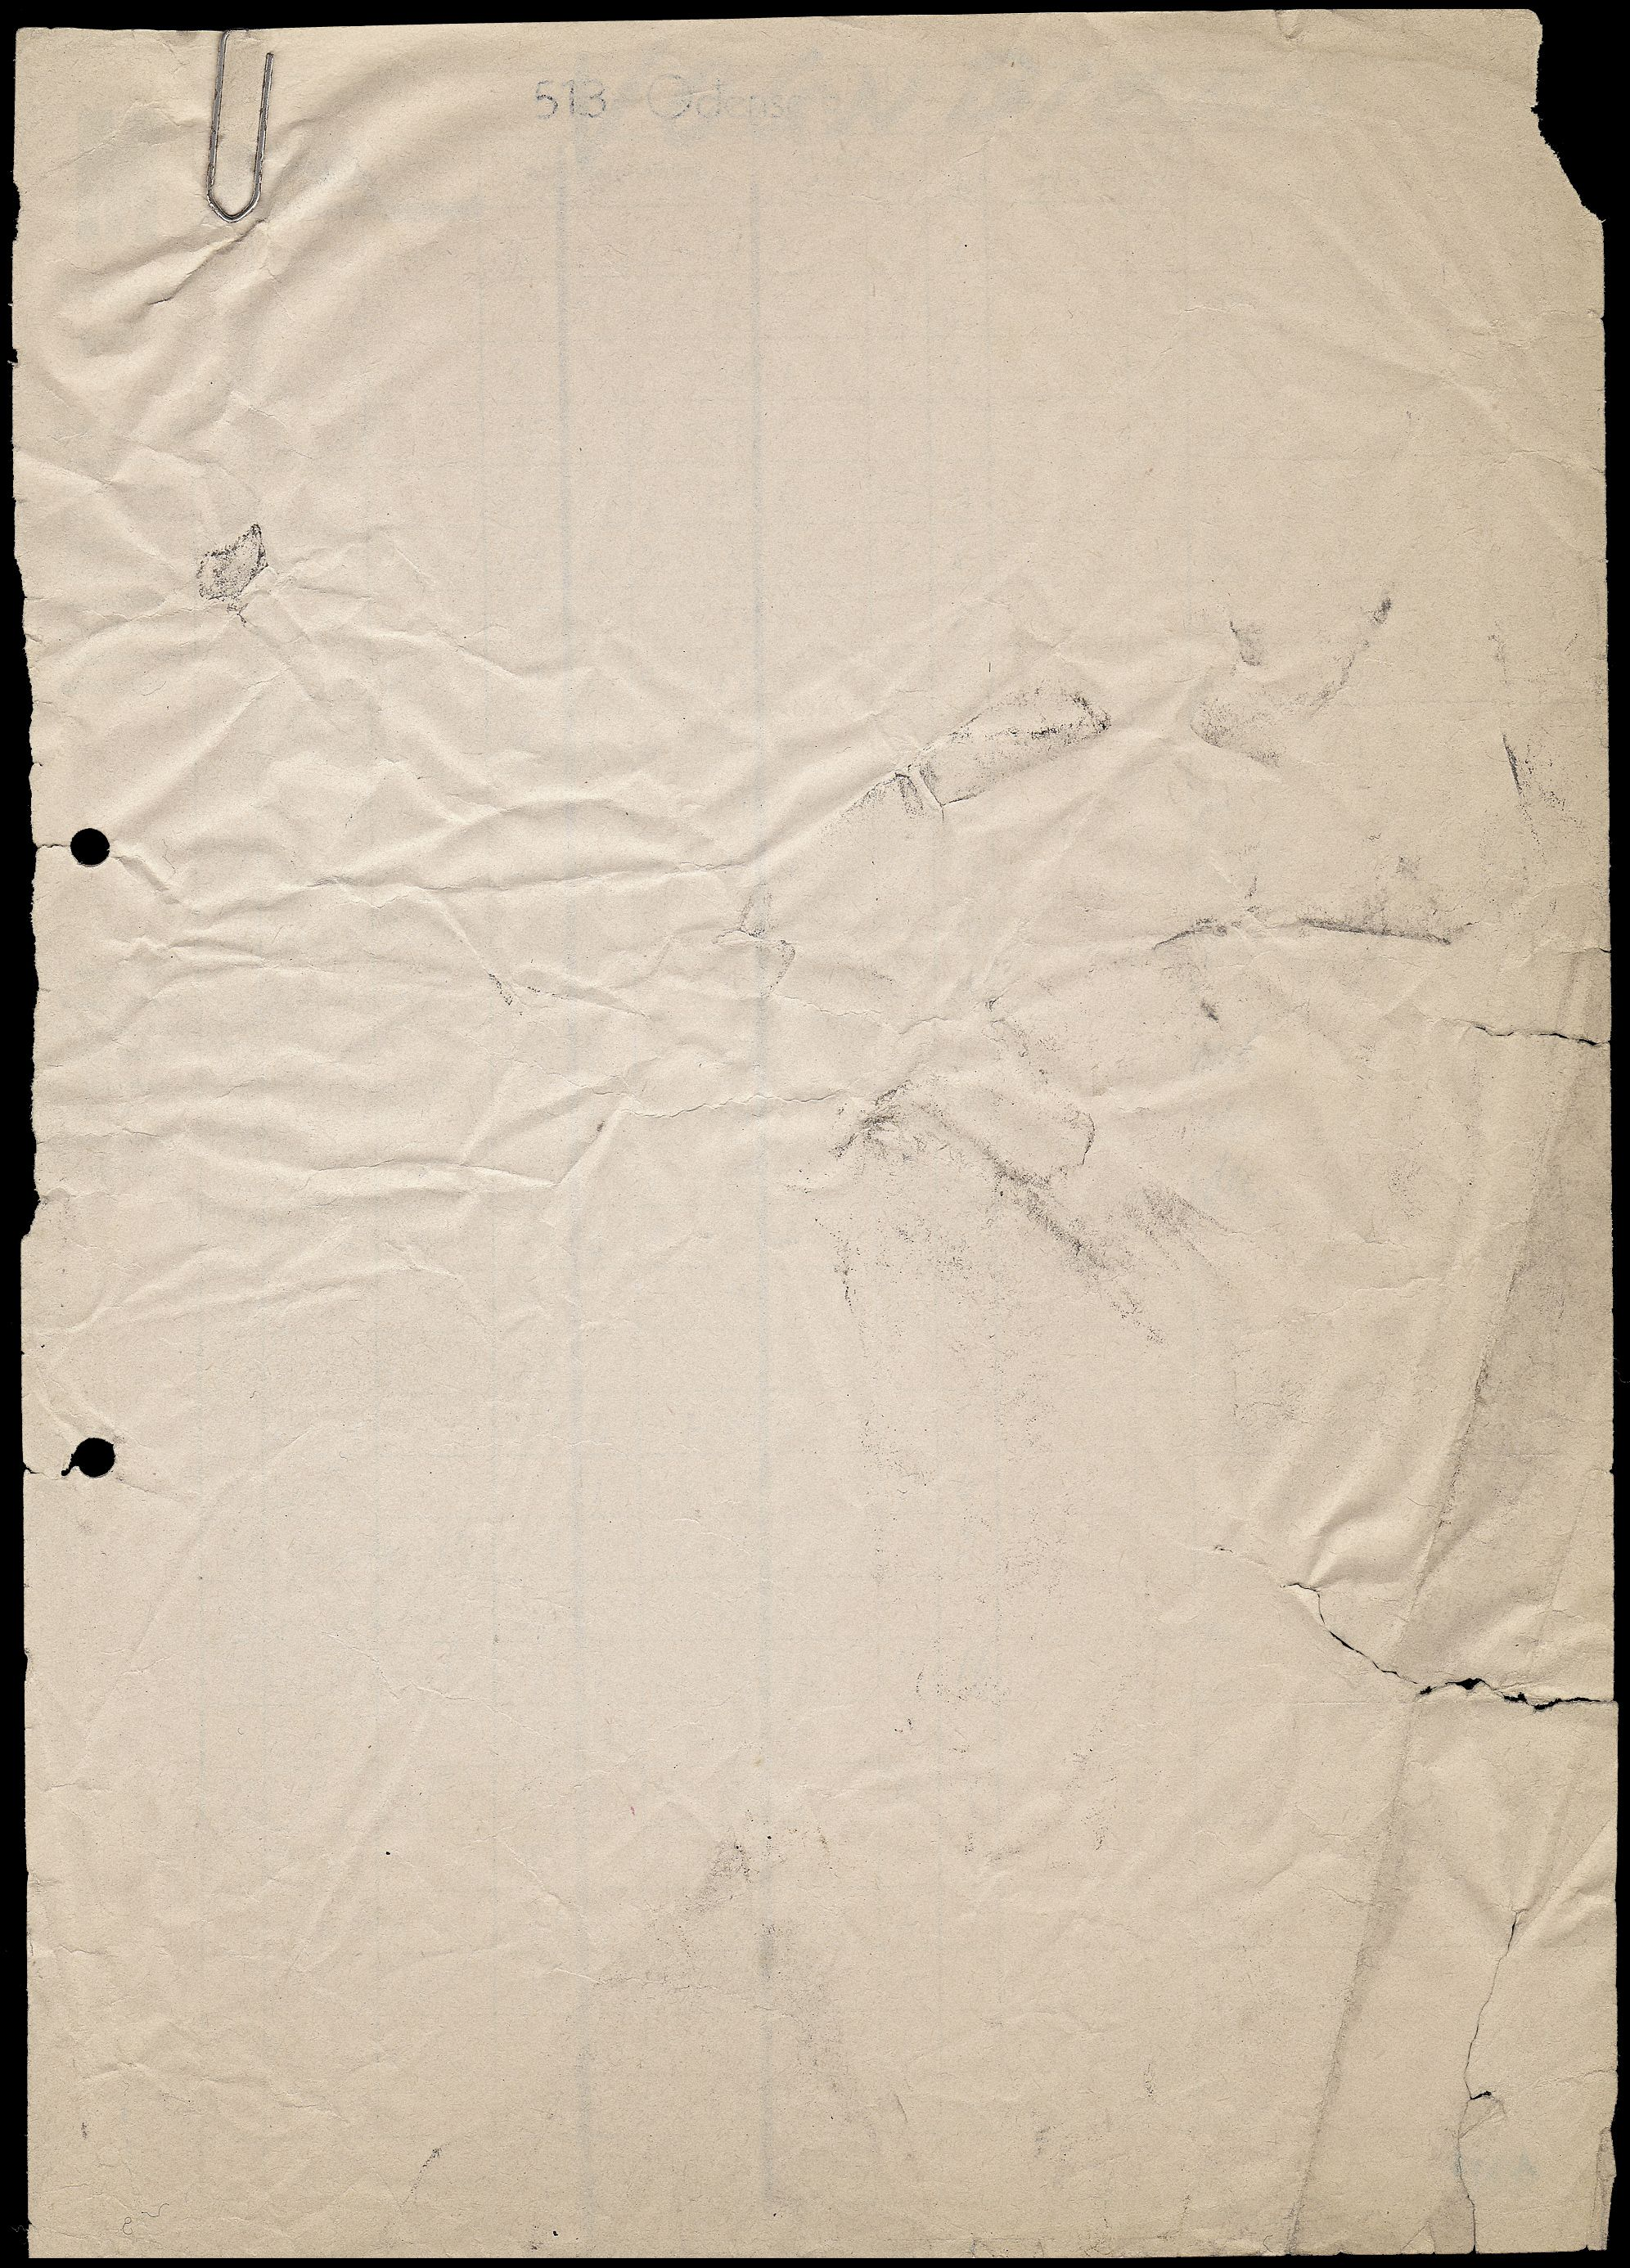 Grungy paper texture v.13 by bashcorpo on DeviantArt